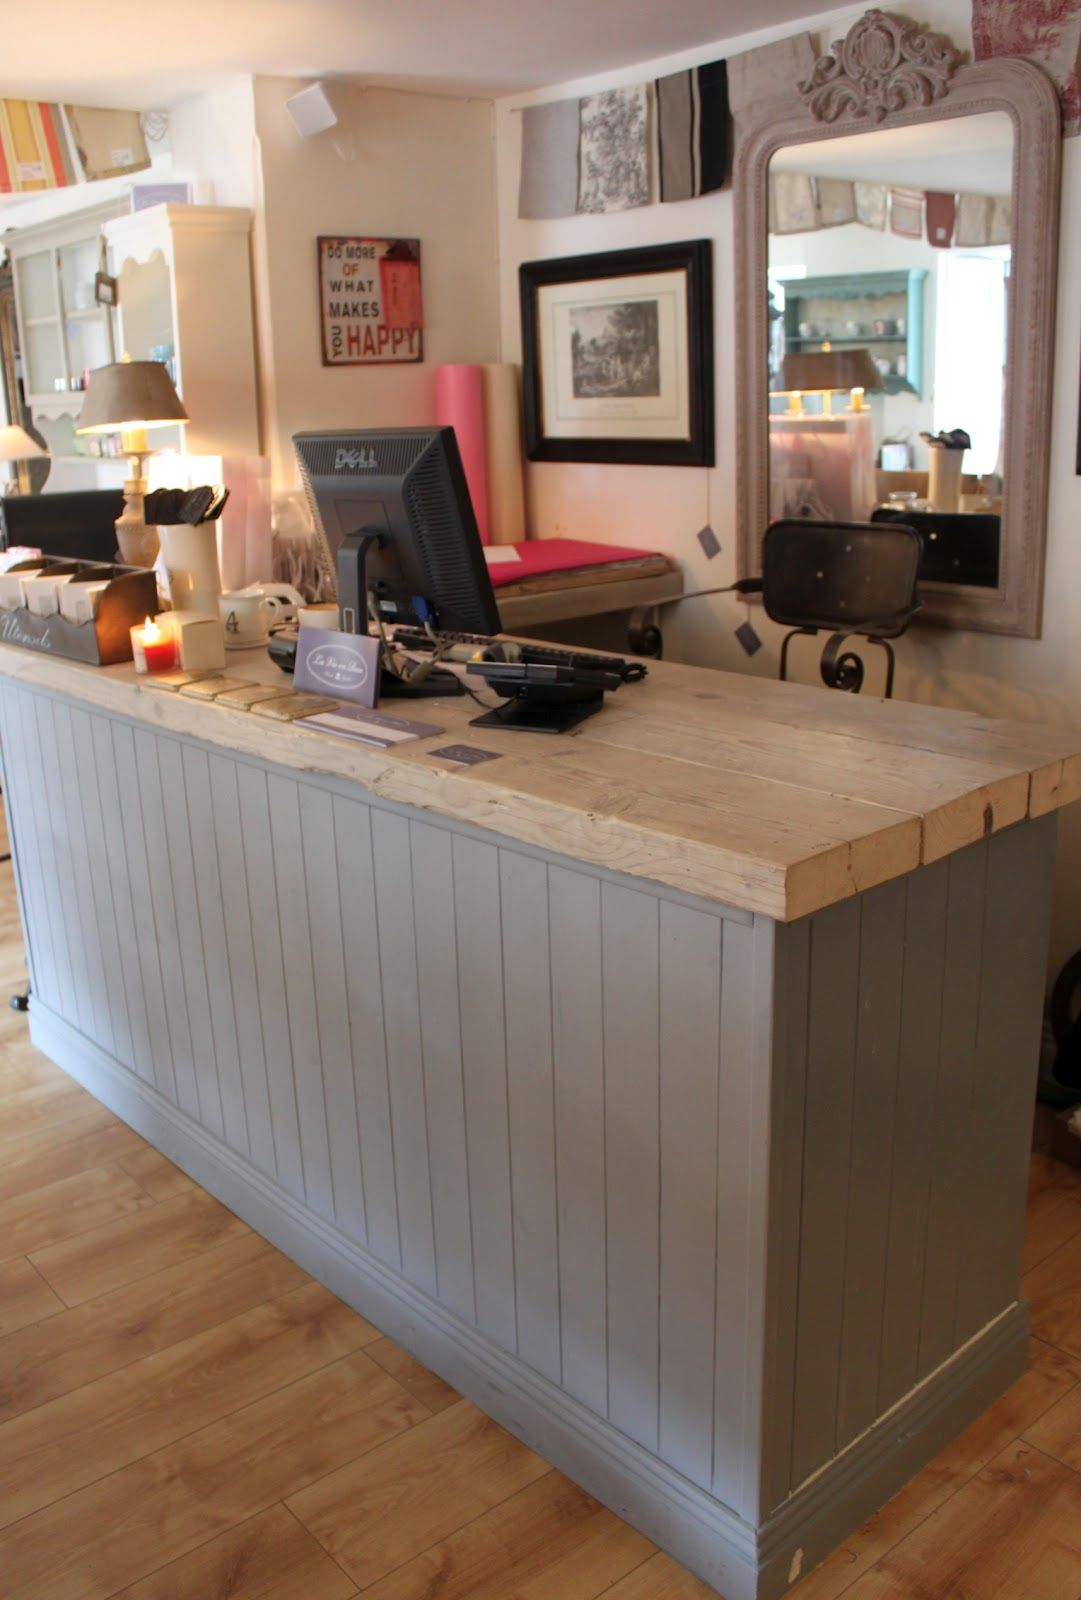 Shop Counter At La Vie En Rose Painted In A Mix Of Louis Blue And